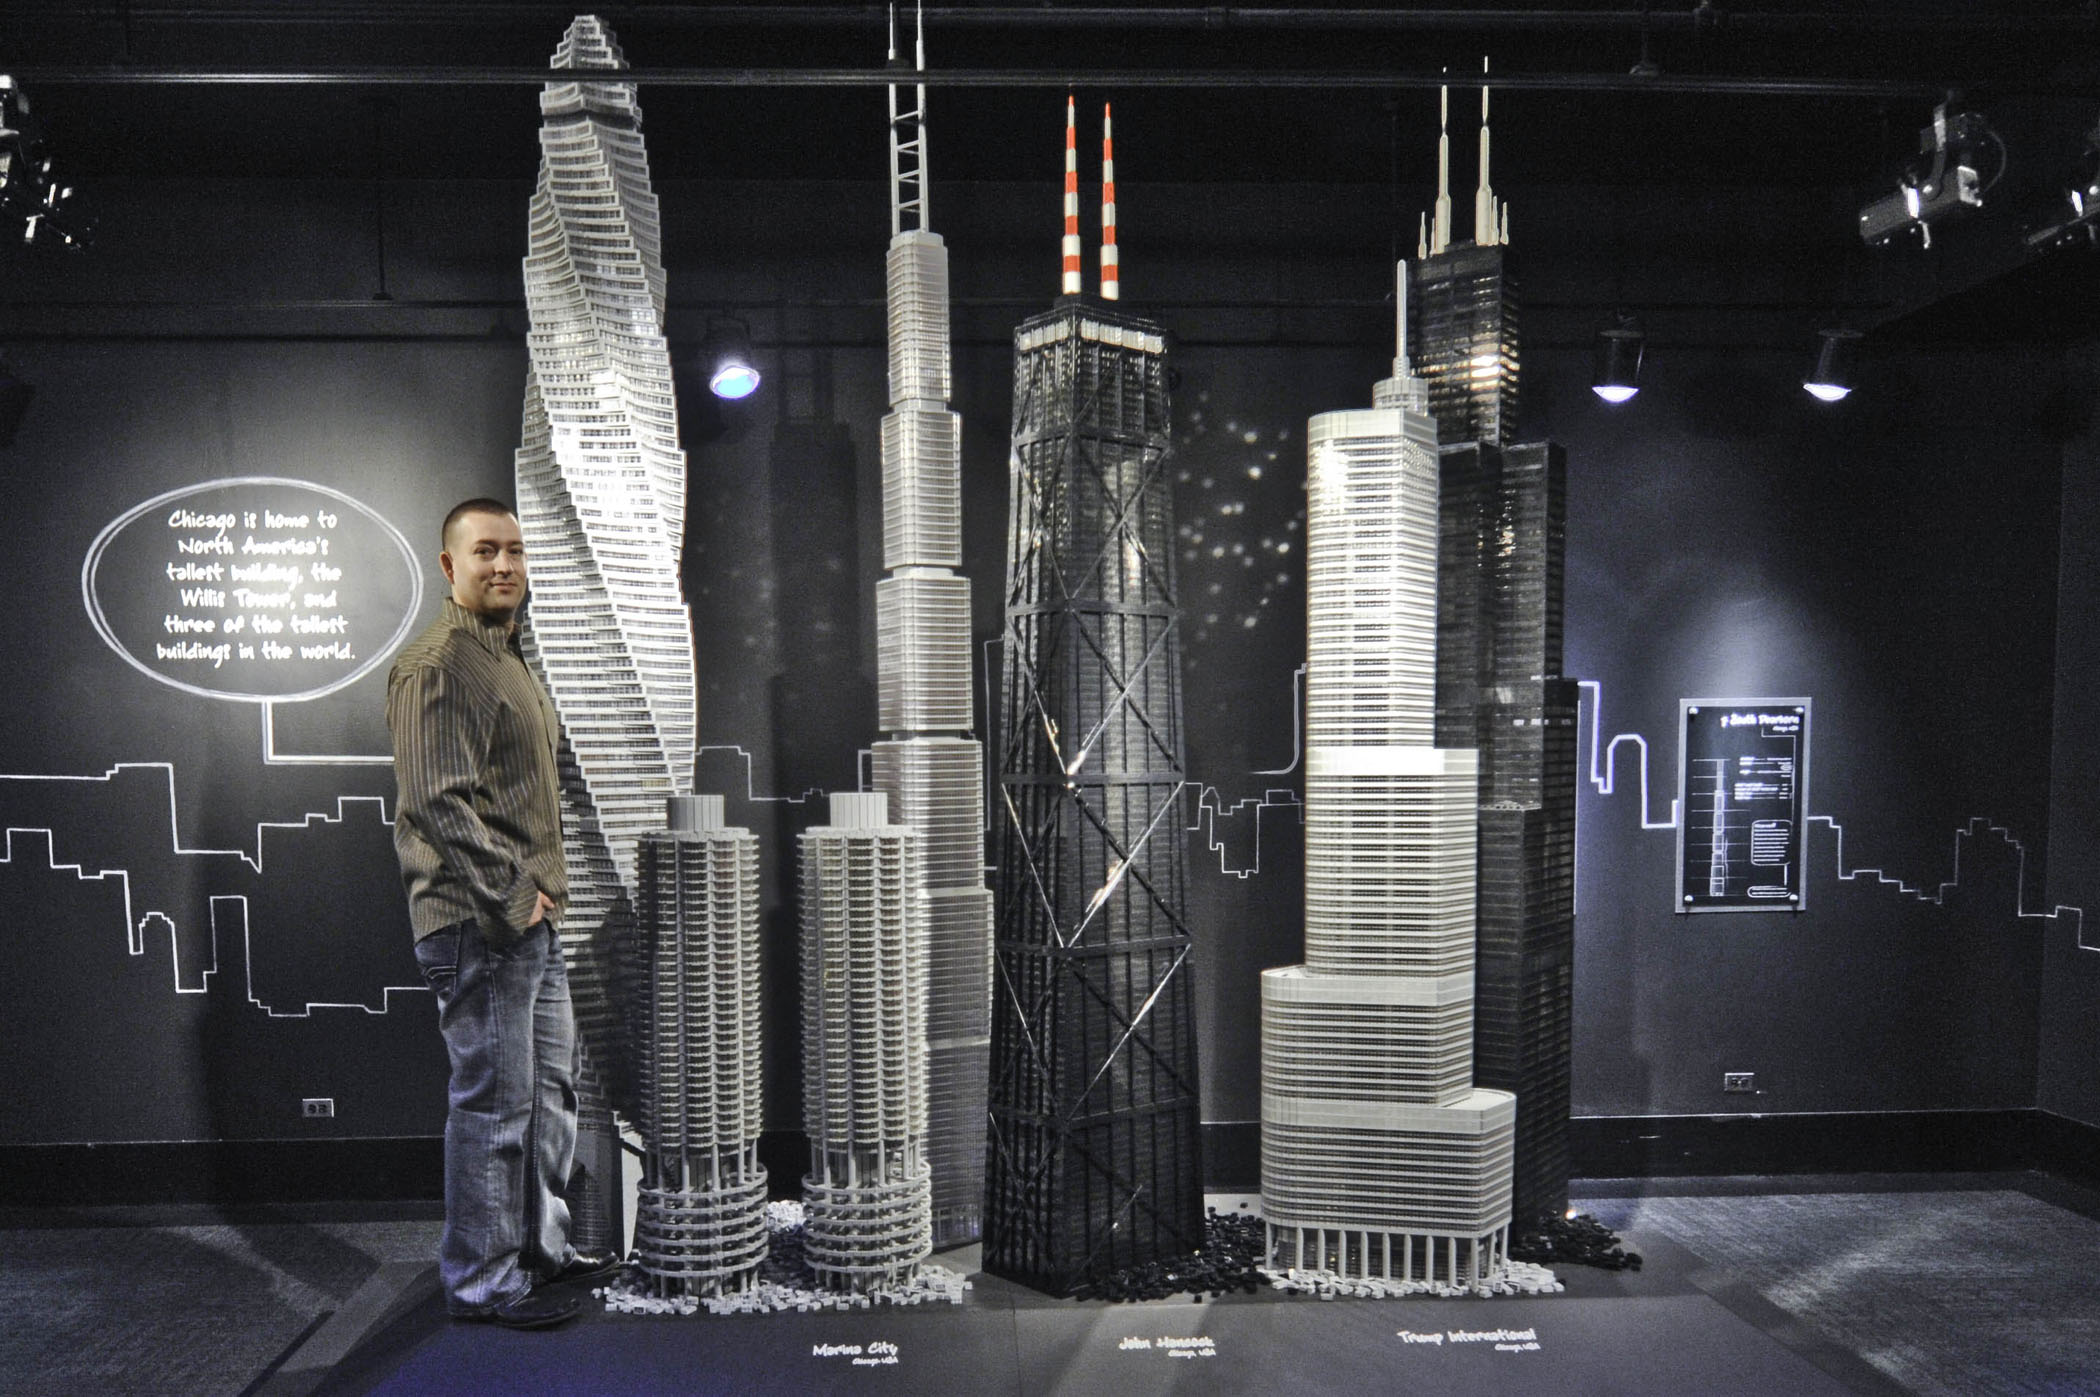 http://www.andamio.eu/wp-content/uploads/2014/01/LEGO_Tucker-with-Chicago-Buildings-grande.jpg